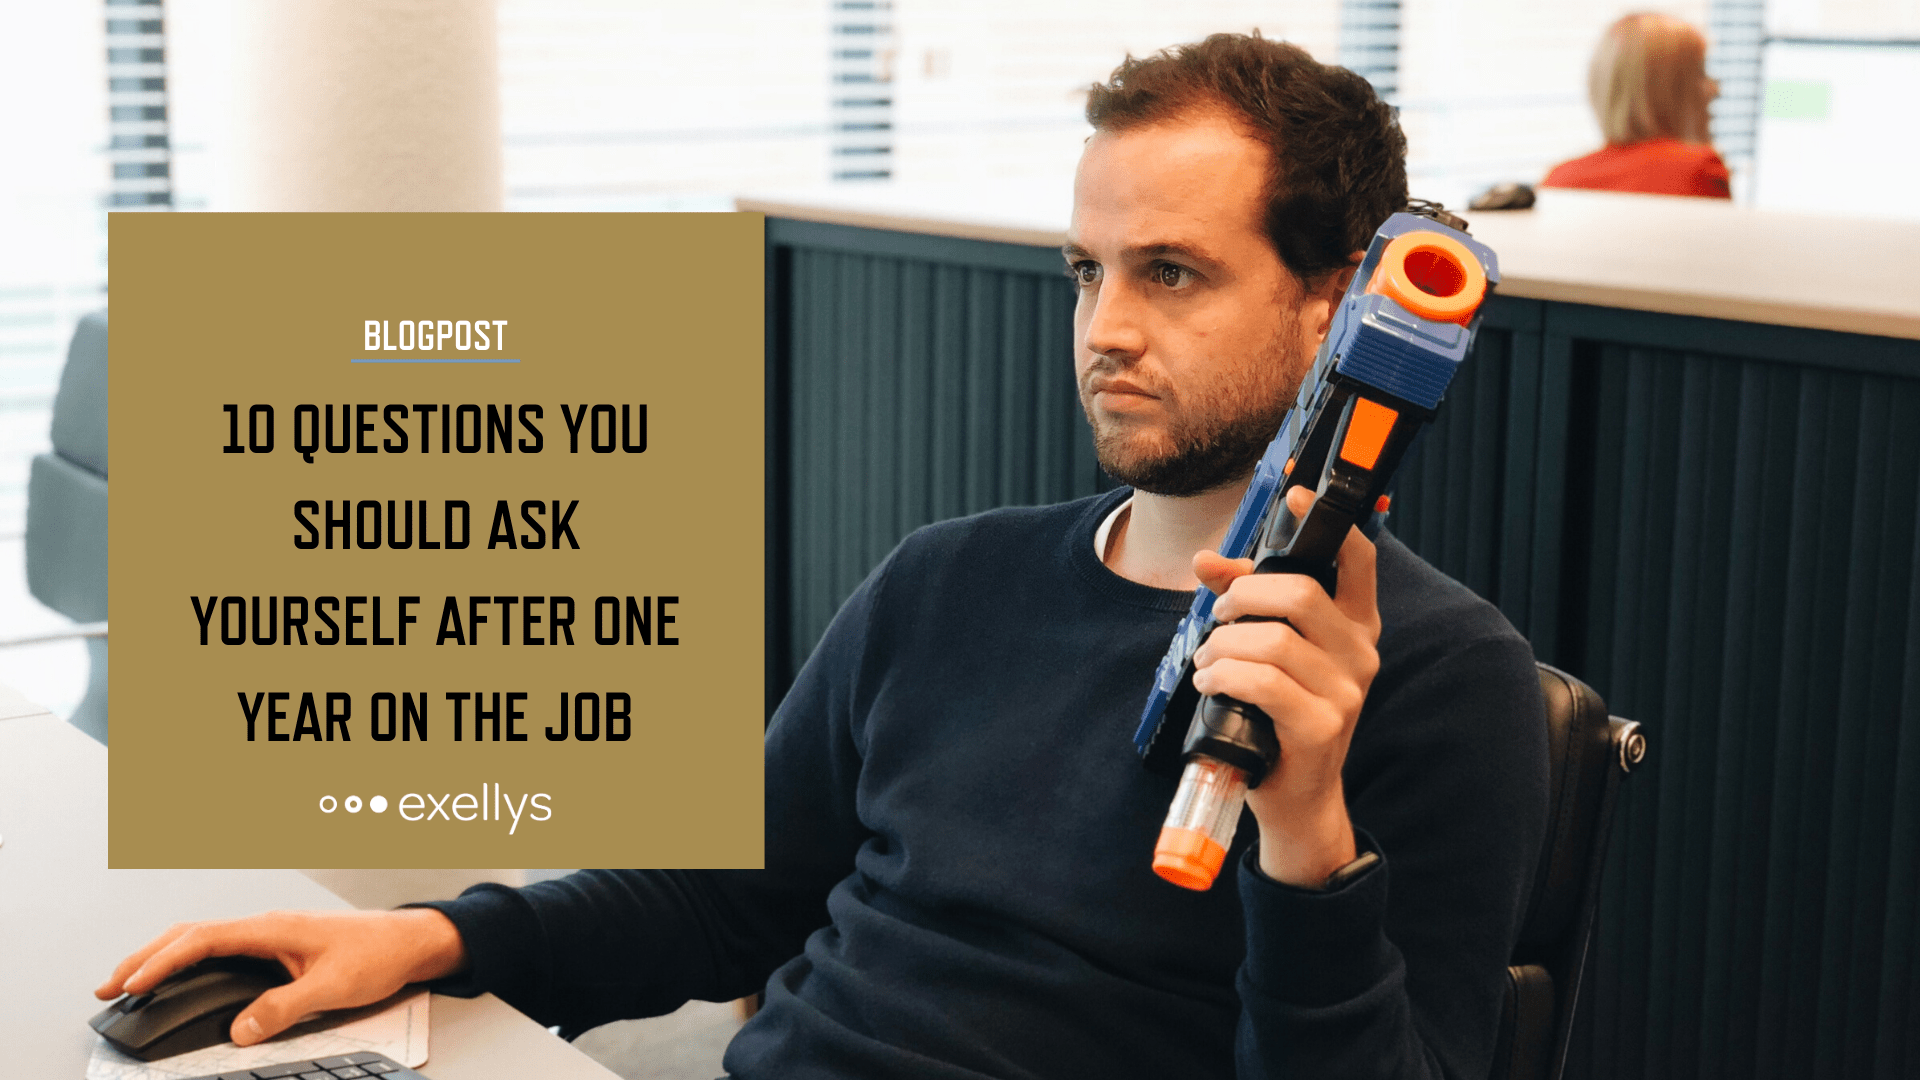 10 questions you should ask yourself after one year on the job - Social share image